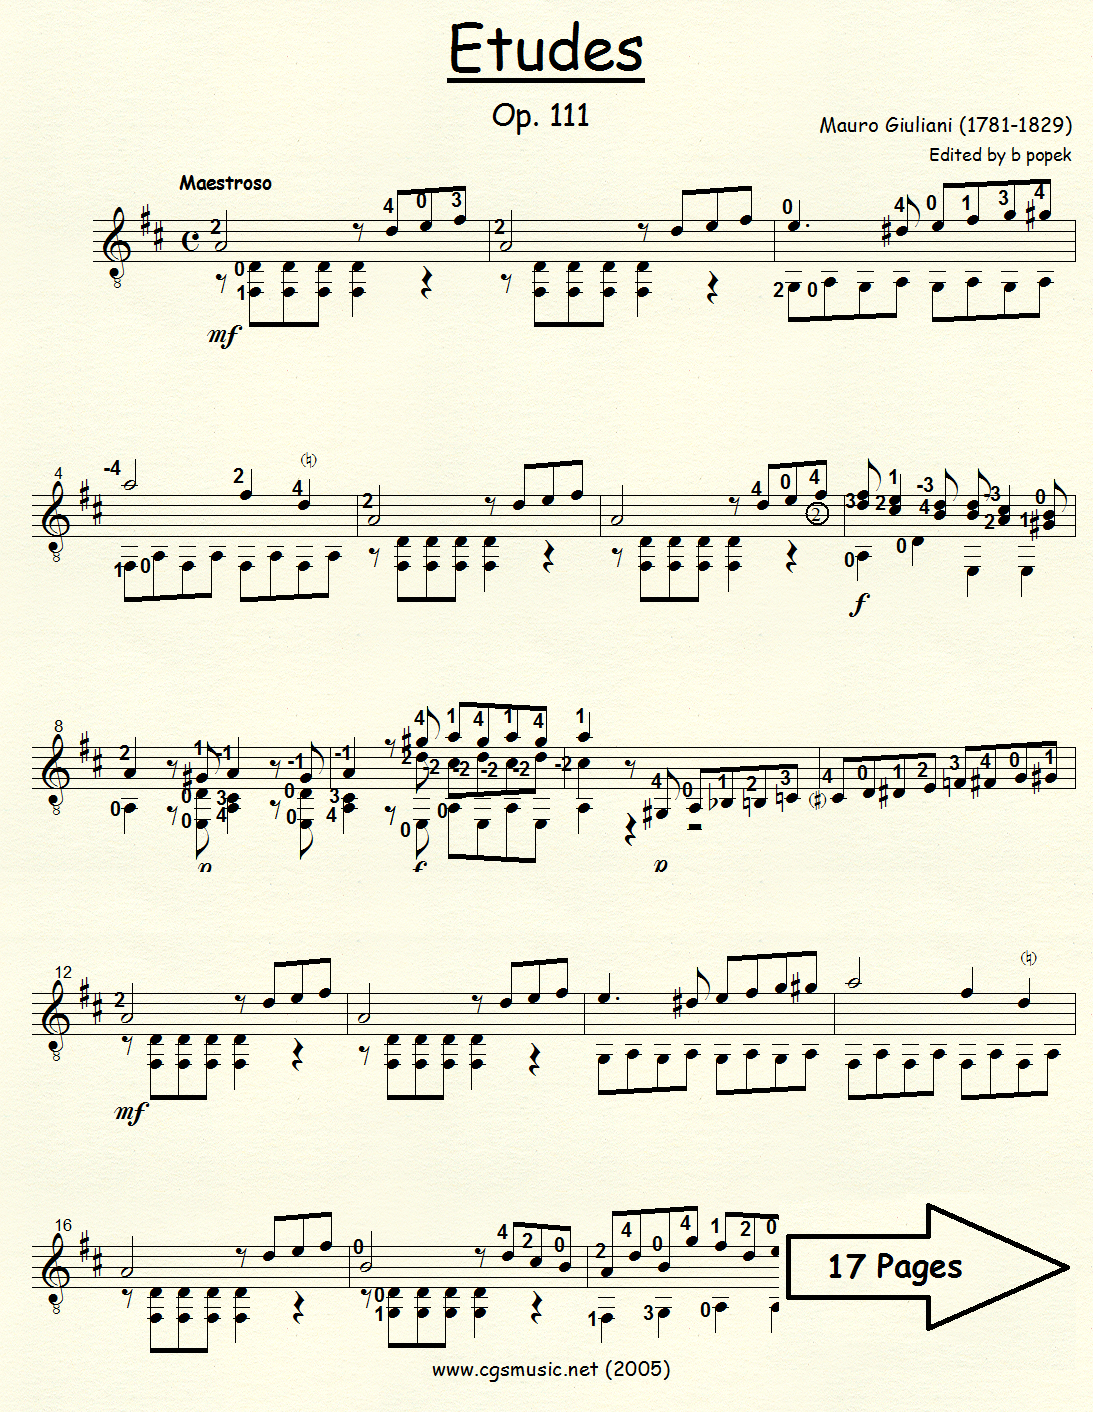 Etudes Op 111 (Giuliani) for Classical Guitar in Standard Notation